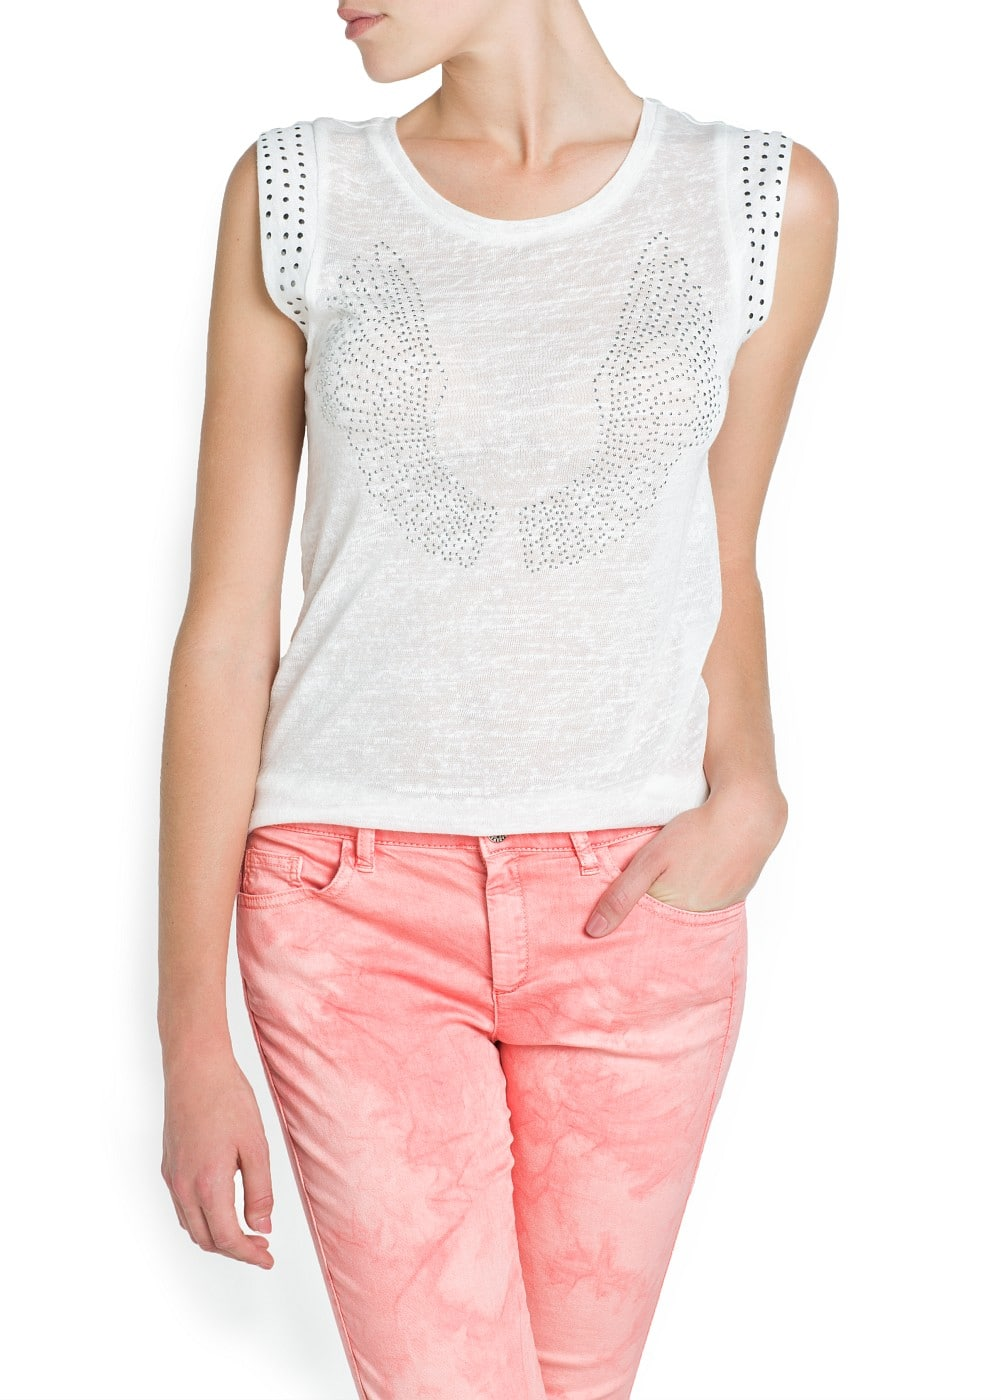 STRASS WINGS T-SHIRT